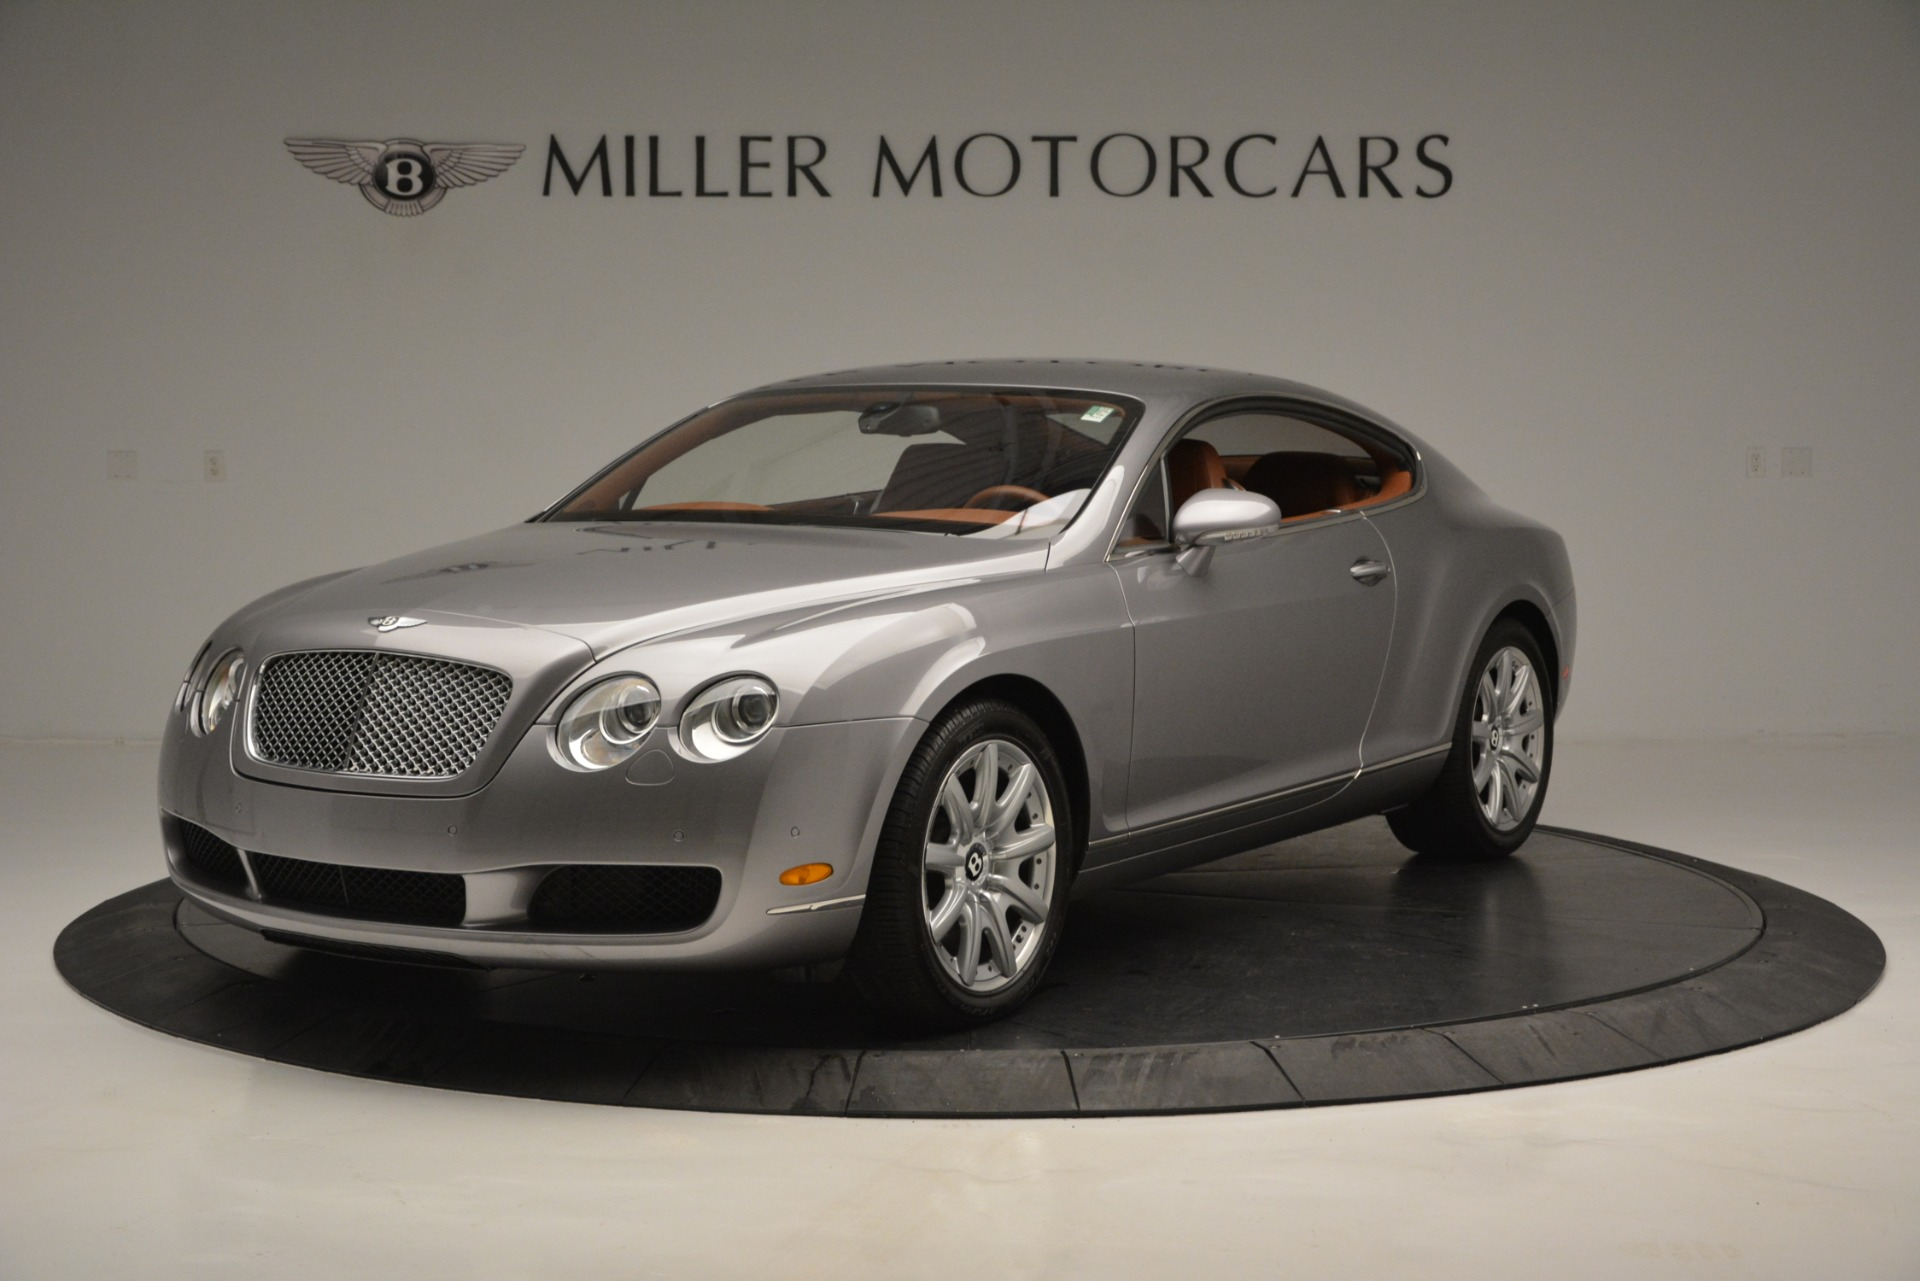 Used 2005 Bentley Continental GT GT Turbo for sale Sold at Aston Martin of Greenwich in Greenwich CT 06830 1